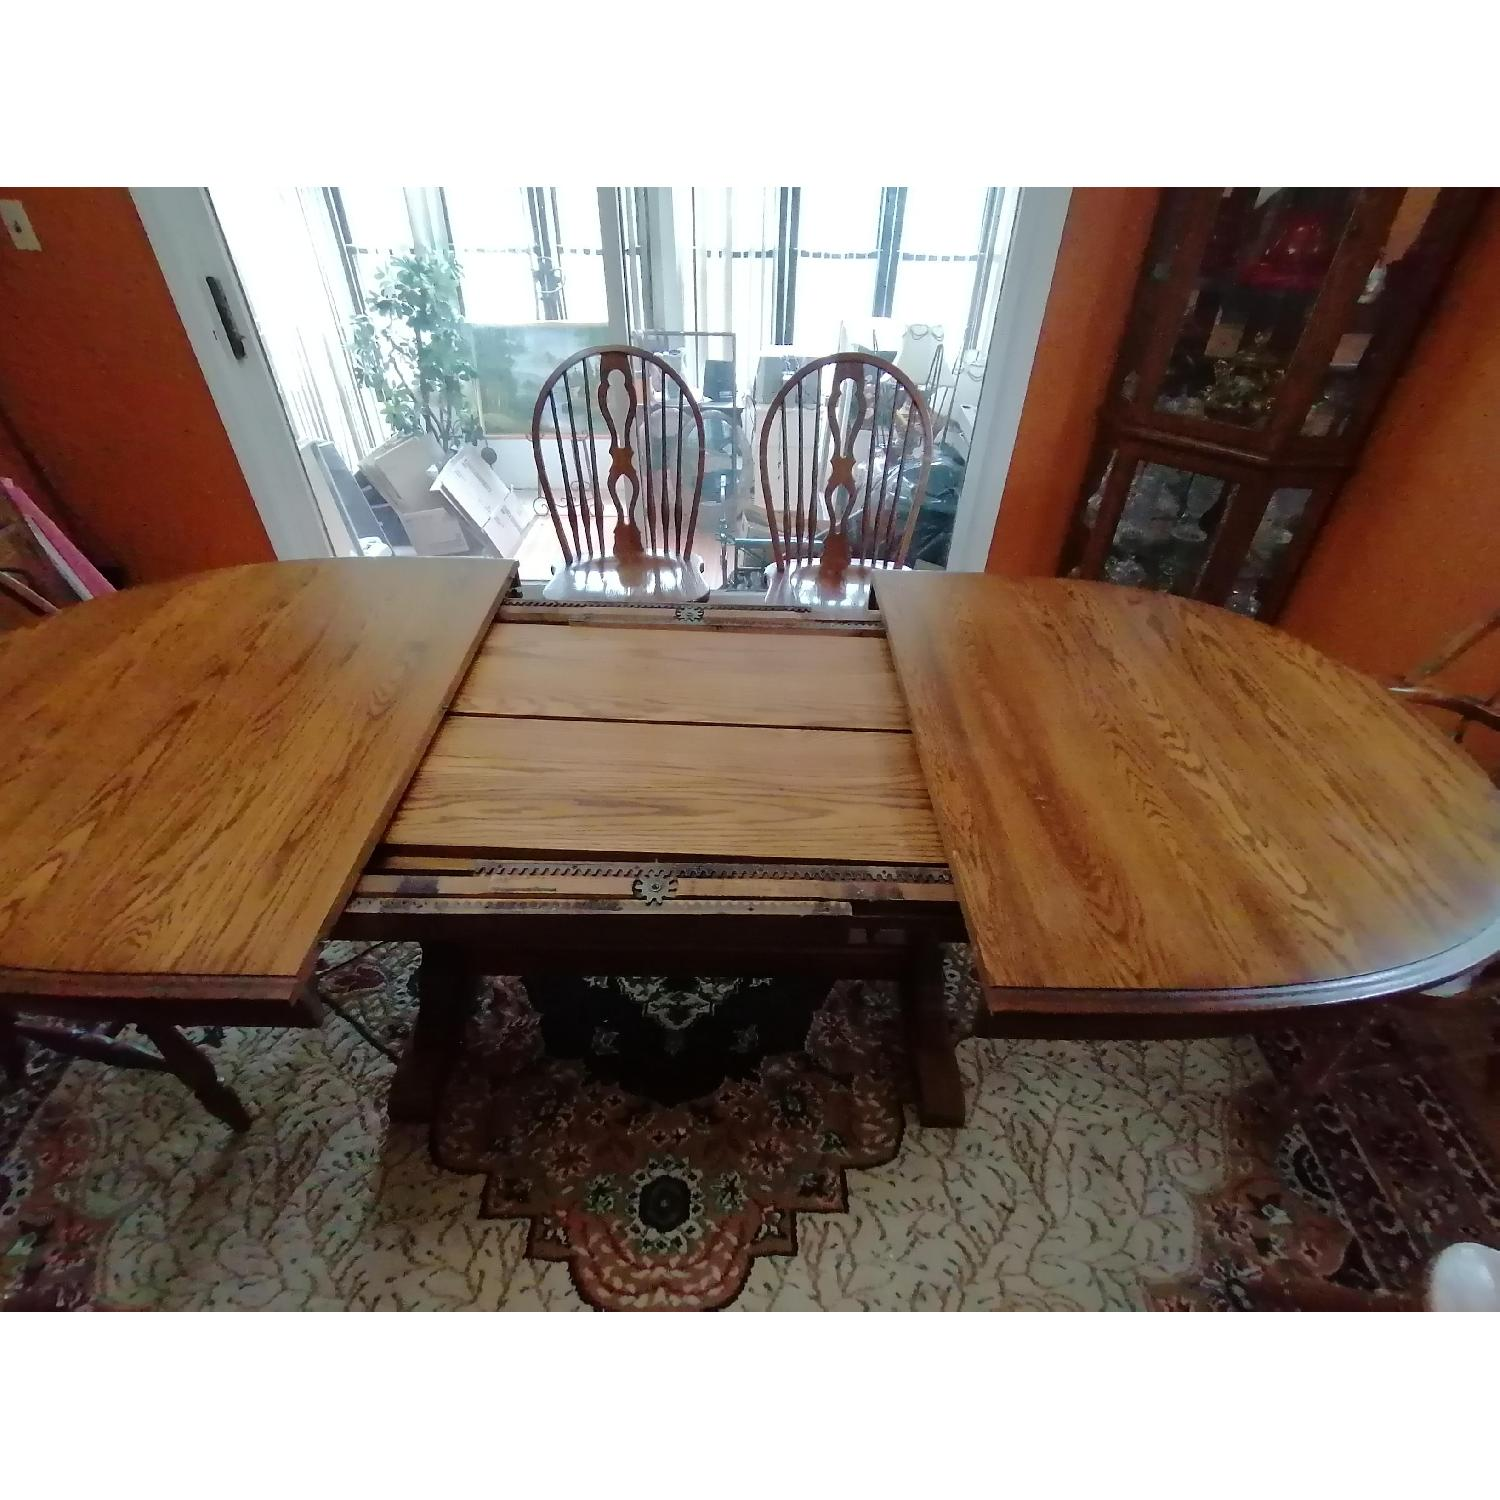 Raymour & Flanigan Extendable Dining Table w/ 6 Chairs - image-4